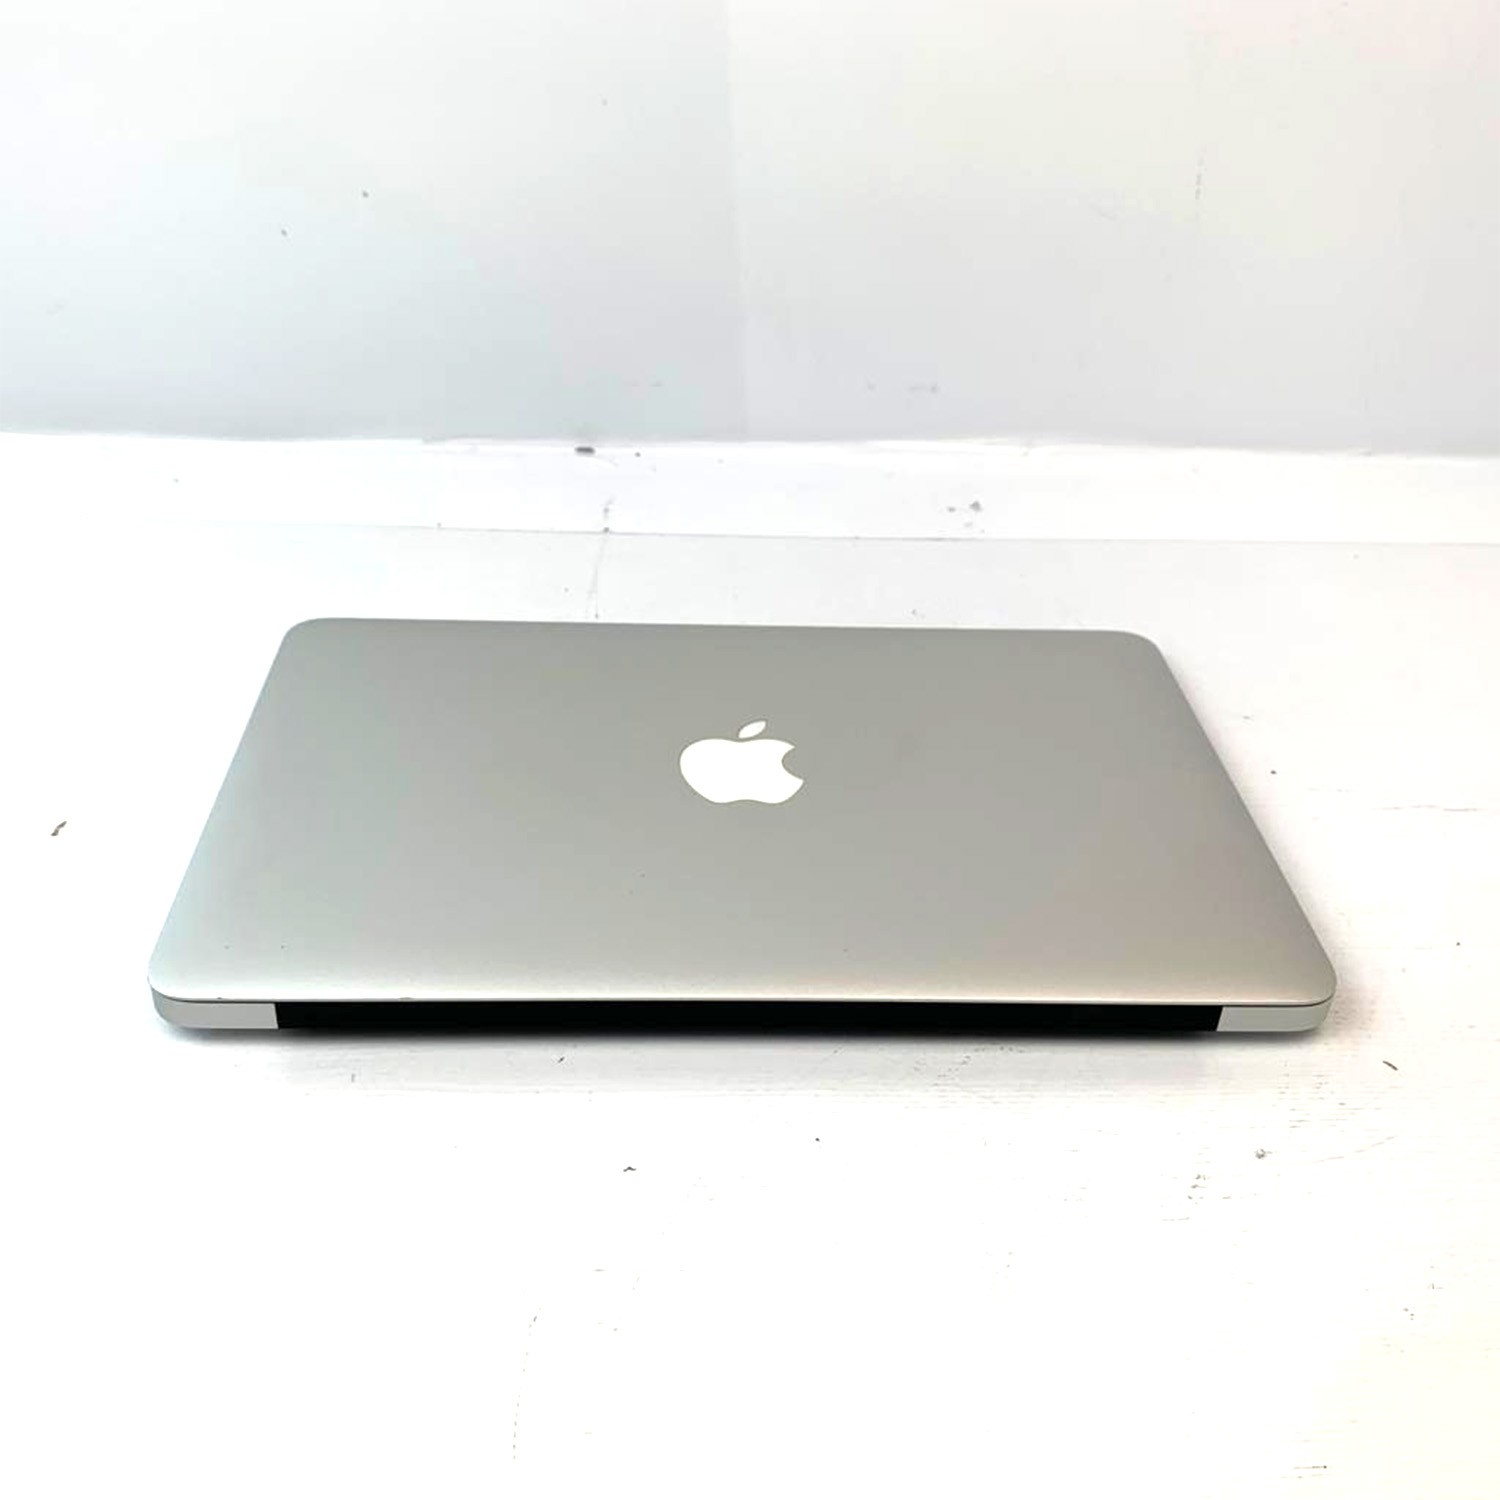 Macbook Air 11 i5 1.3Ghz 4GB 256GB SSD MD711LL/A Seminovo